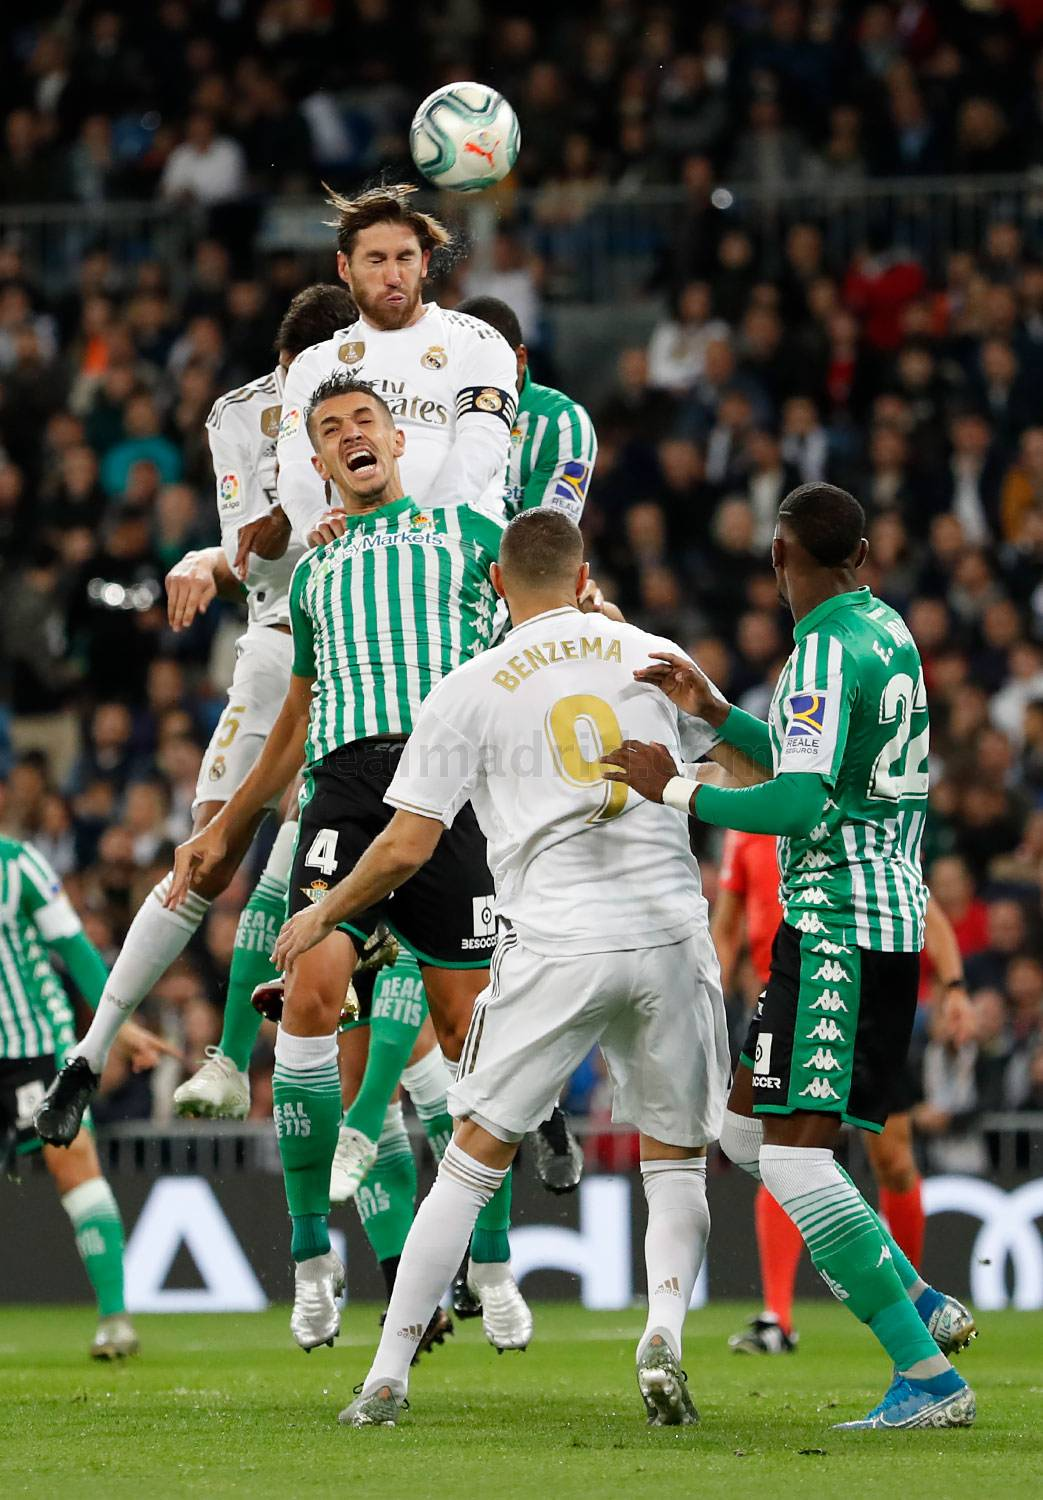 Real Madrid - Real Madrid - Betis - 02-11-2019